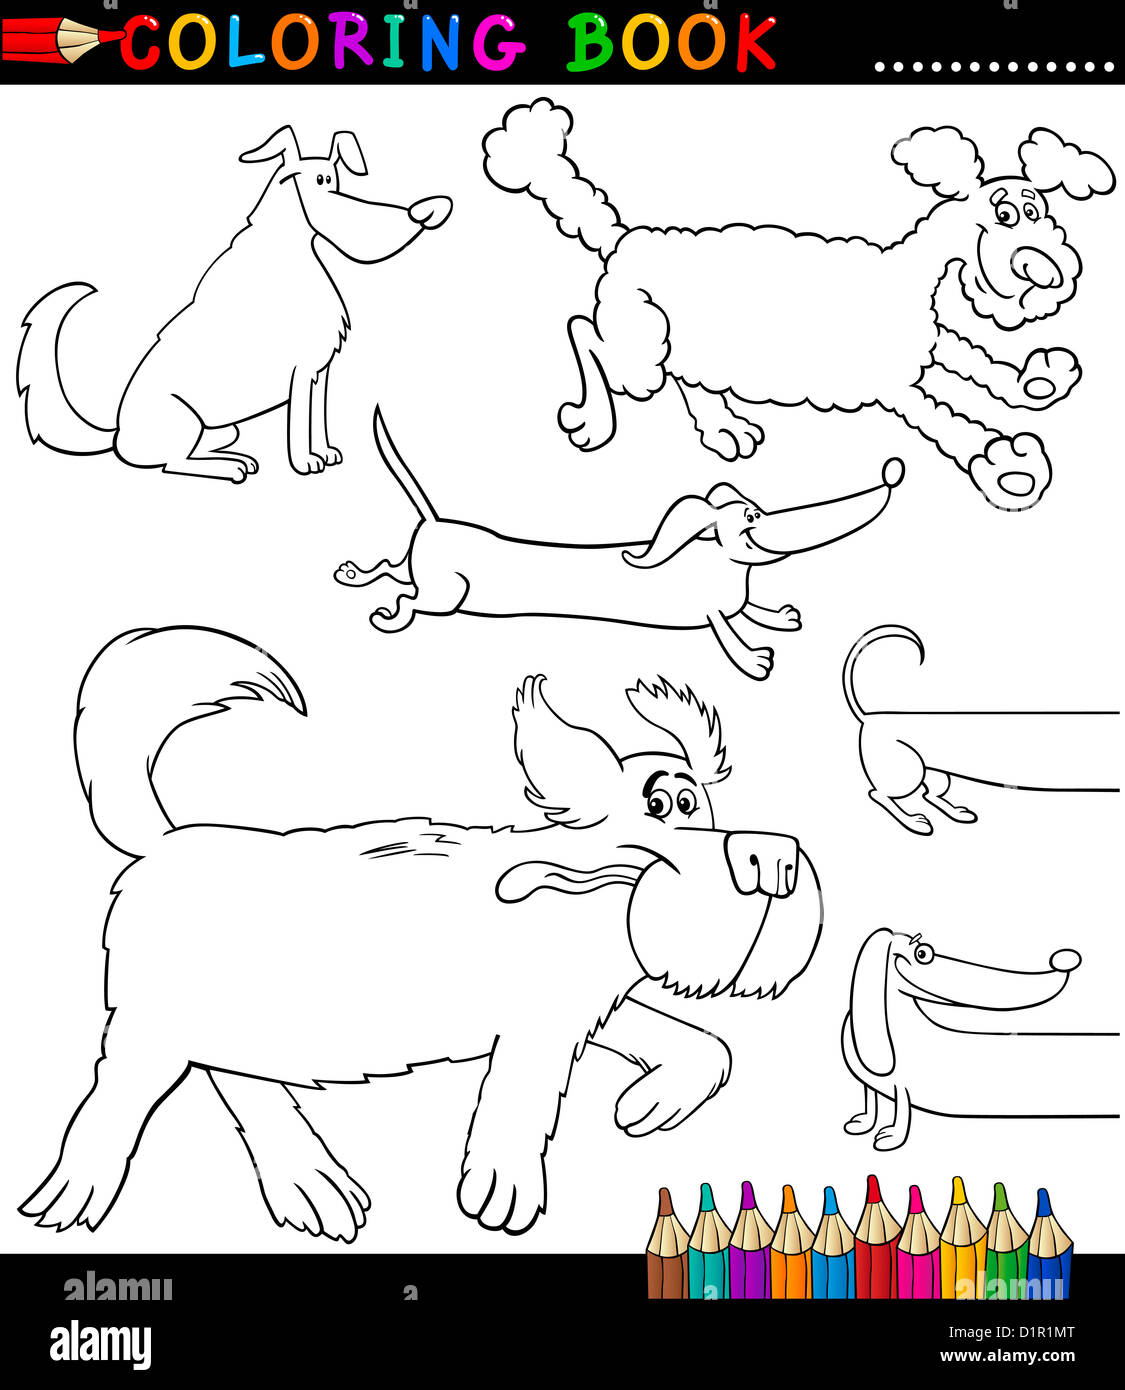 Coloring Book or Coloring Page Black and White Cartoon